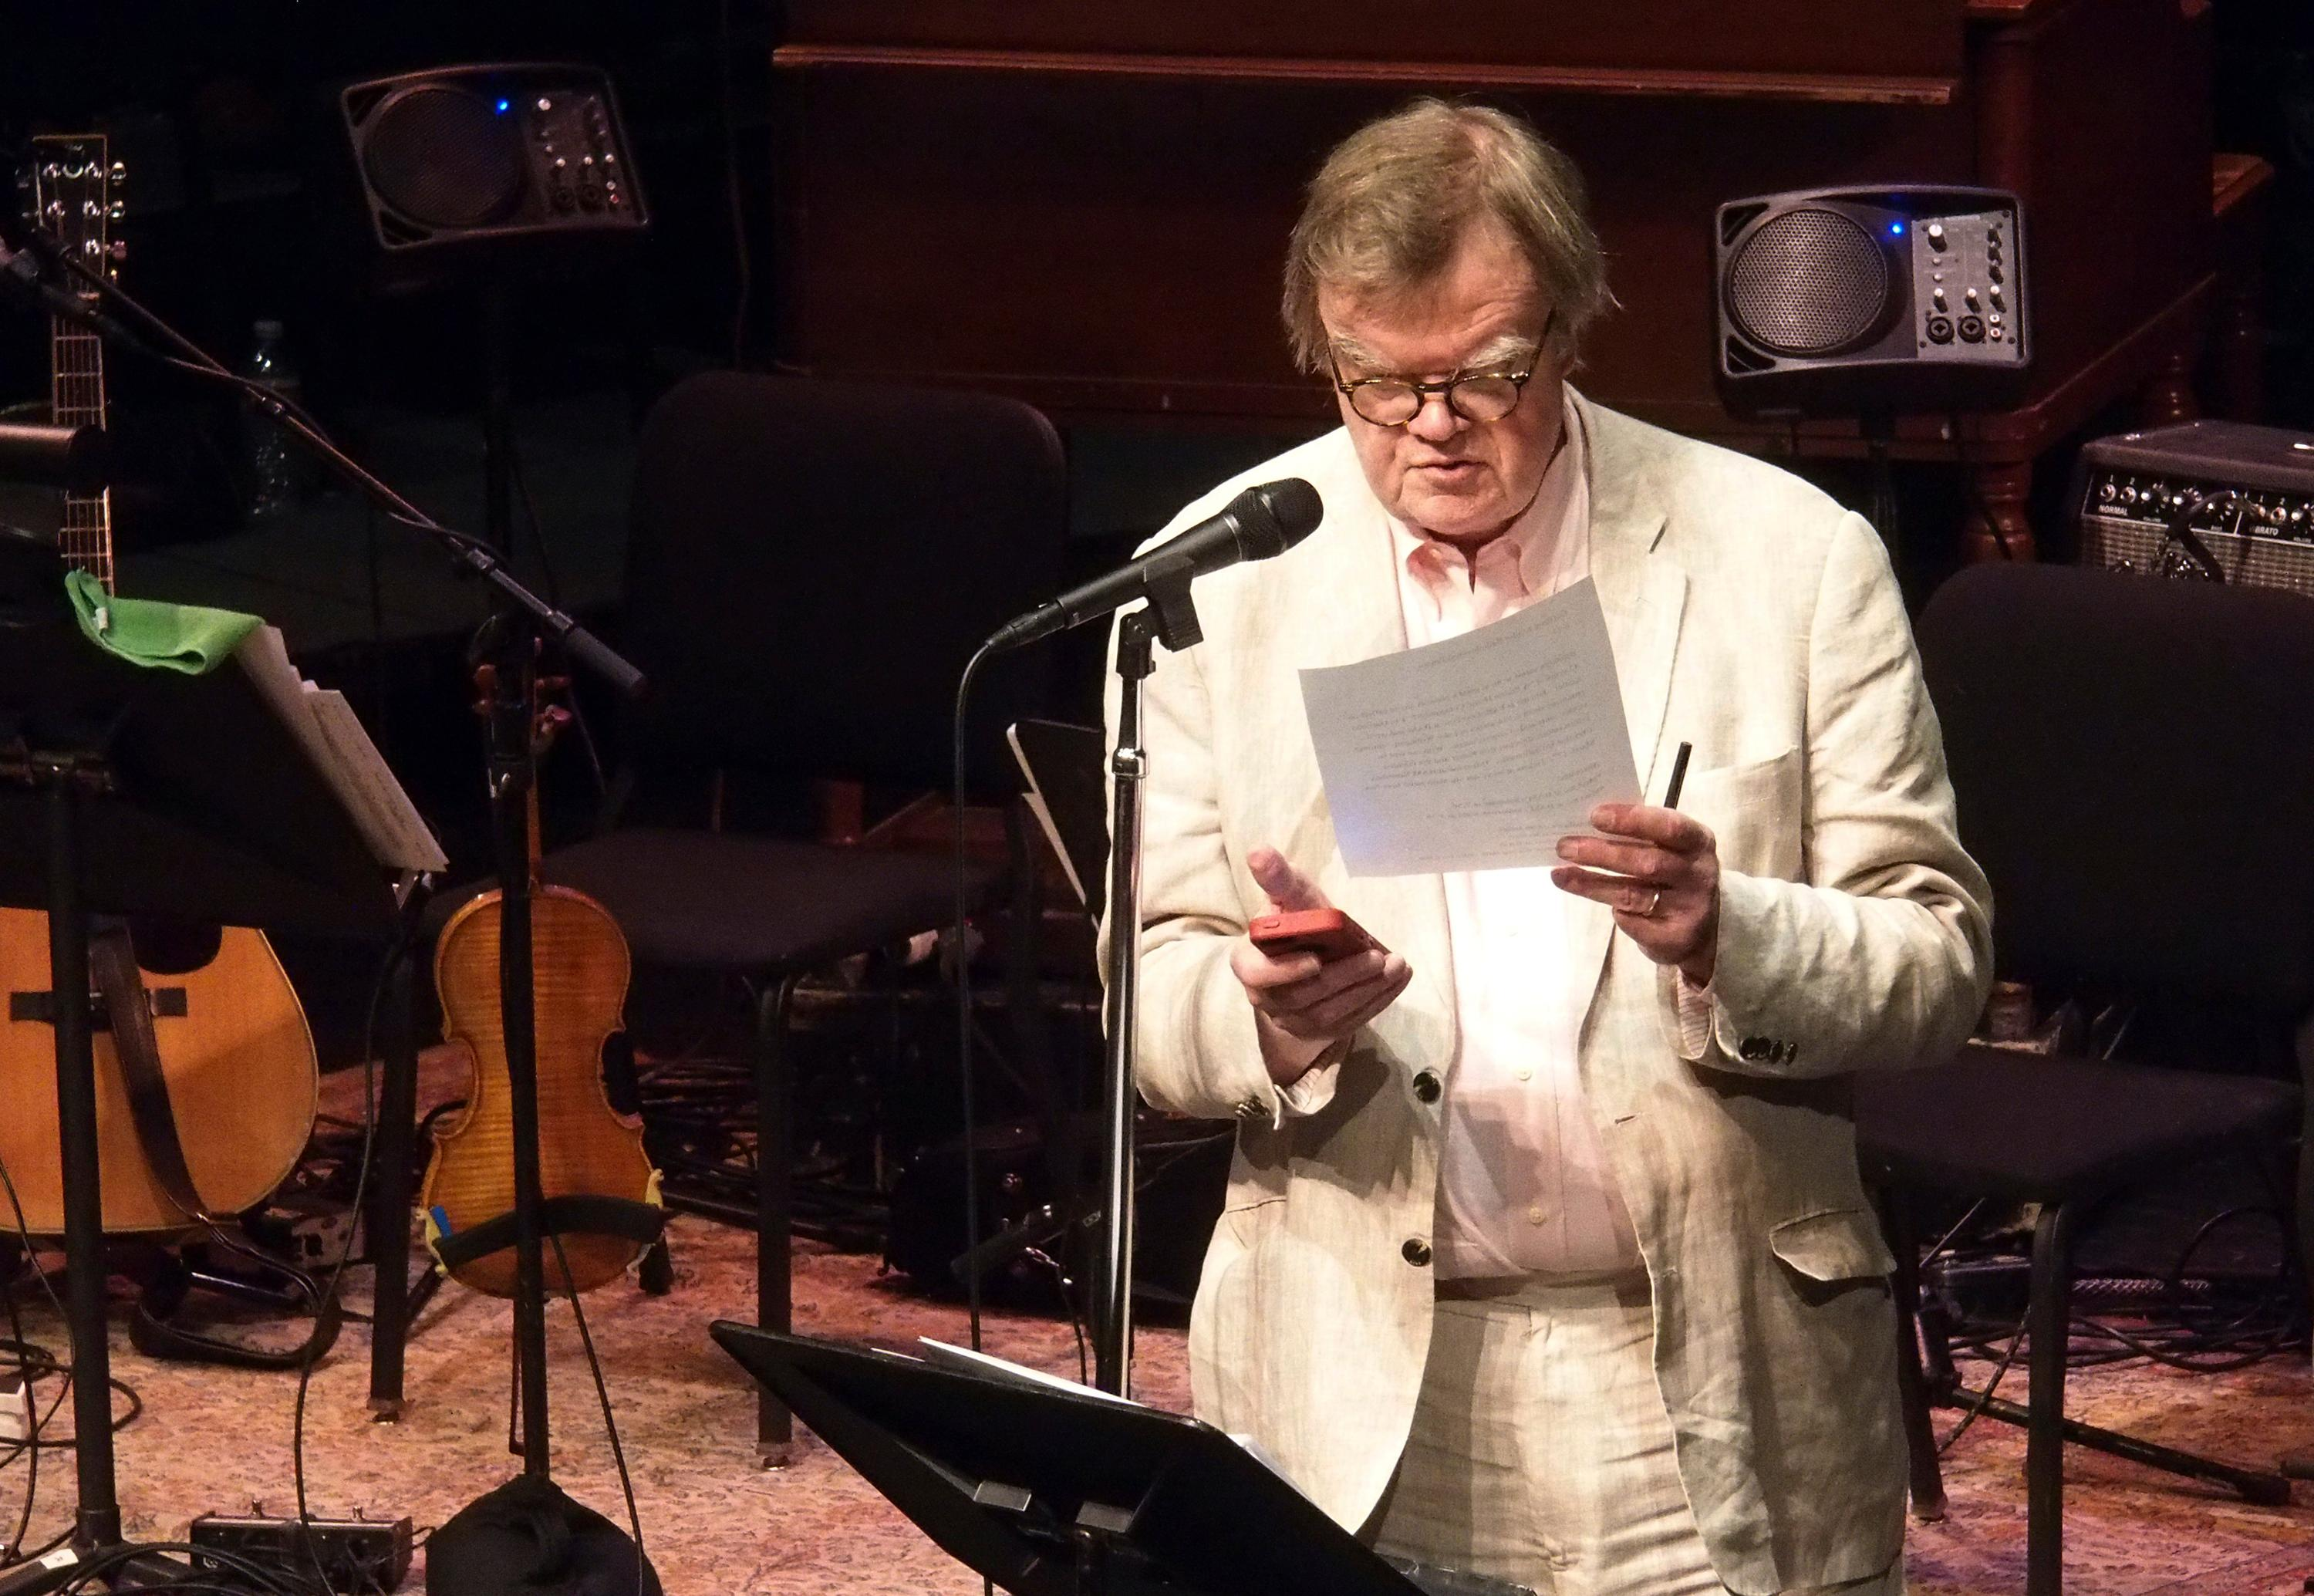 In this Feb. 19, 2016 photo, Garrison Keillor uses his phone at the Fitzgerald Theater in St. Paul to time a promo for an upcoming show. Keillor said Wednesday, Nov. 29, 2017, he has been fired by Minnesota Public Radio over allegations of improper behavior. (Euan Kerr/Minnesota Public Radio via AP)